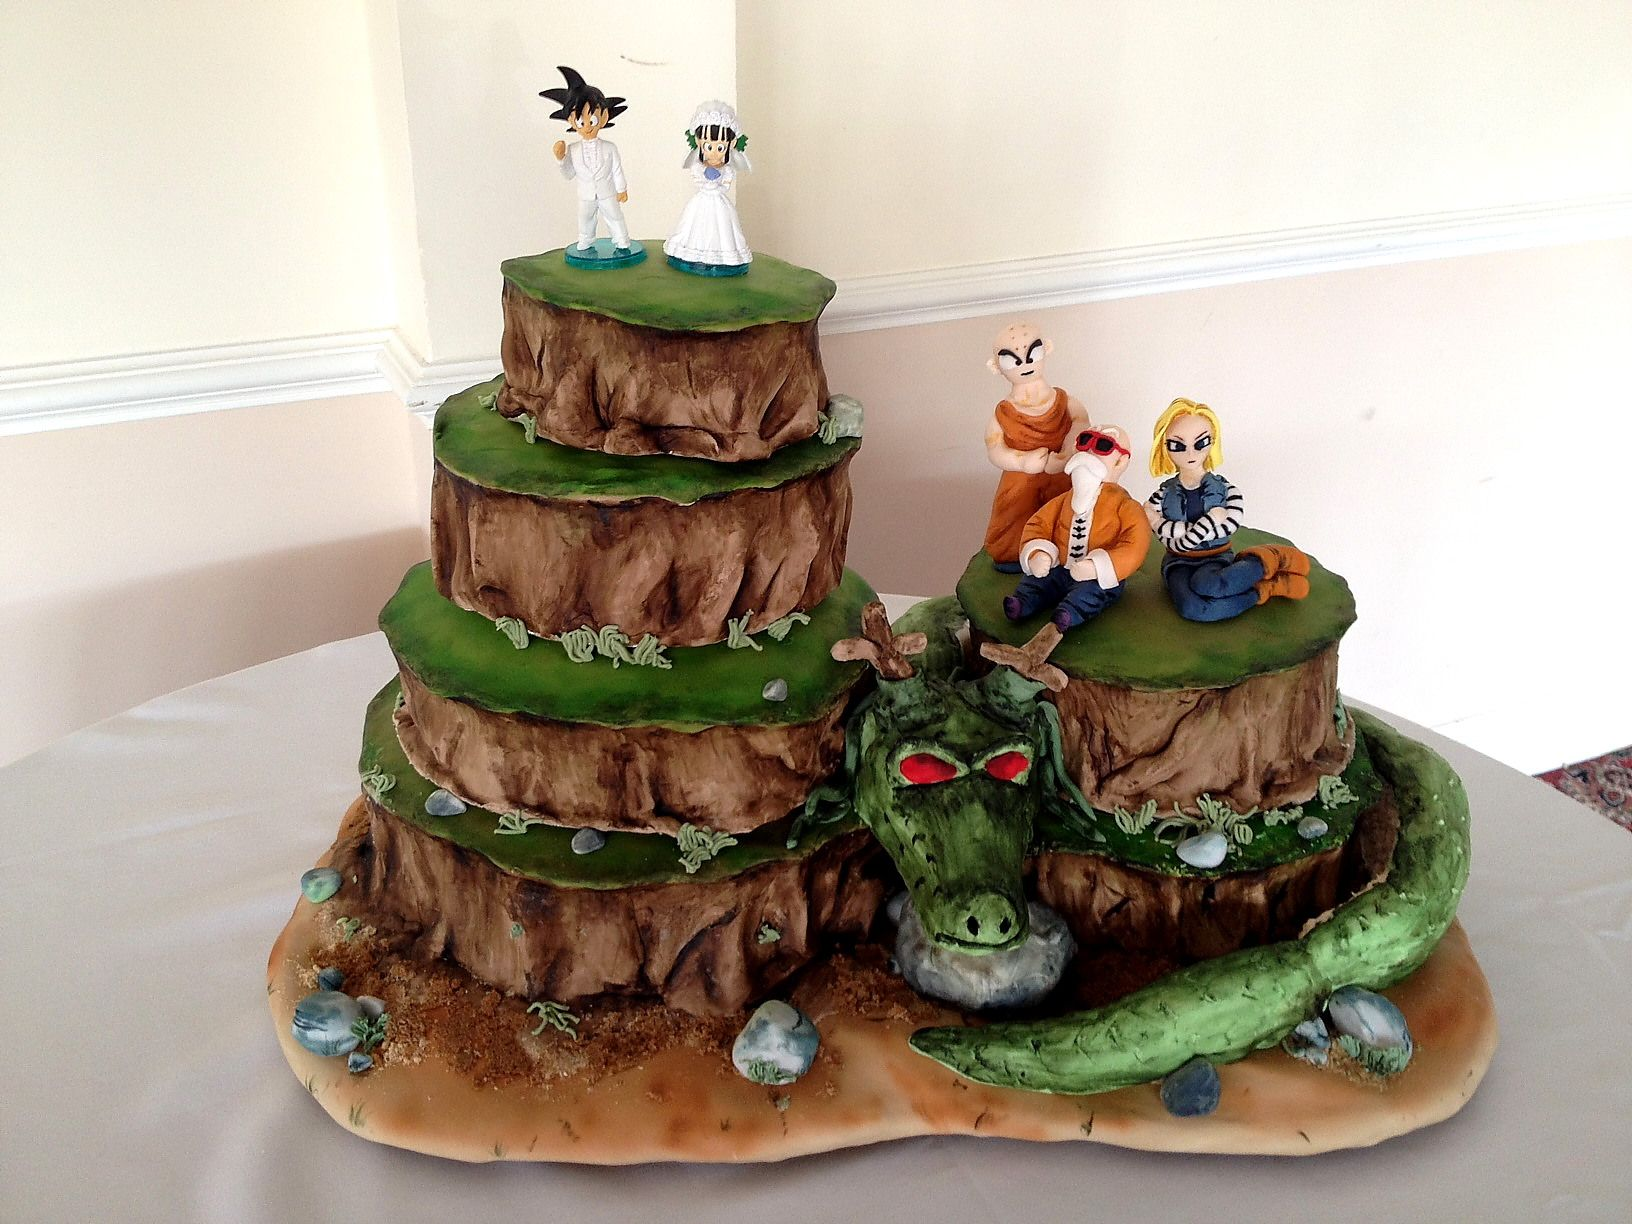 Dragon Ball Z Cake Decorations My First Tiered Wedding Cake Both The Bride And Groom Are Massive